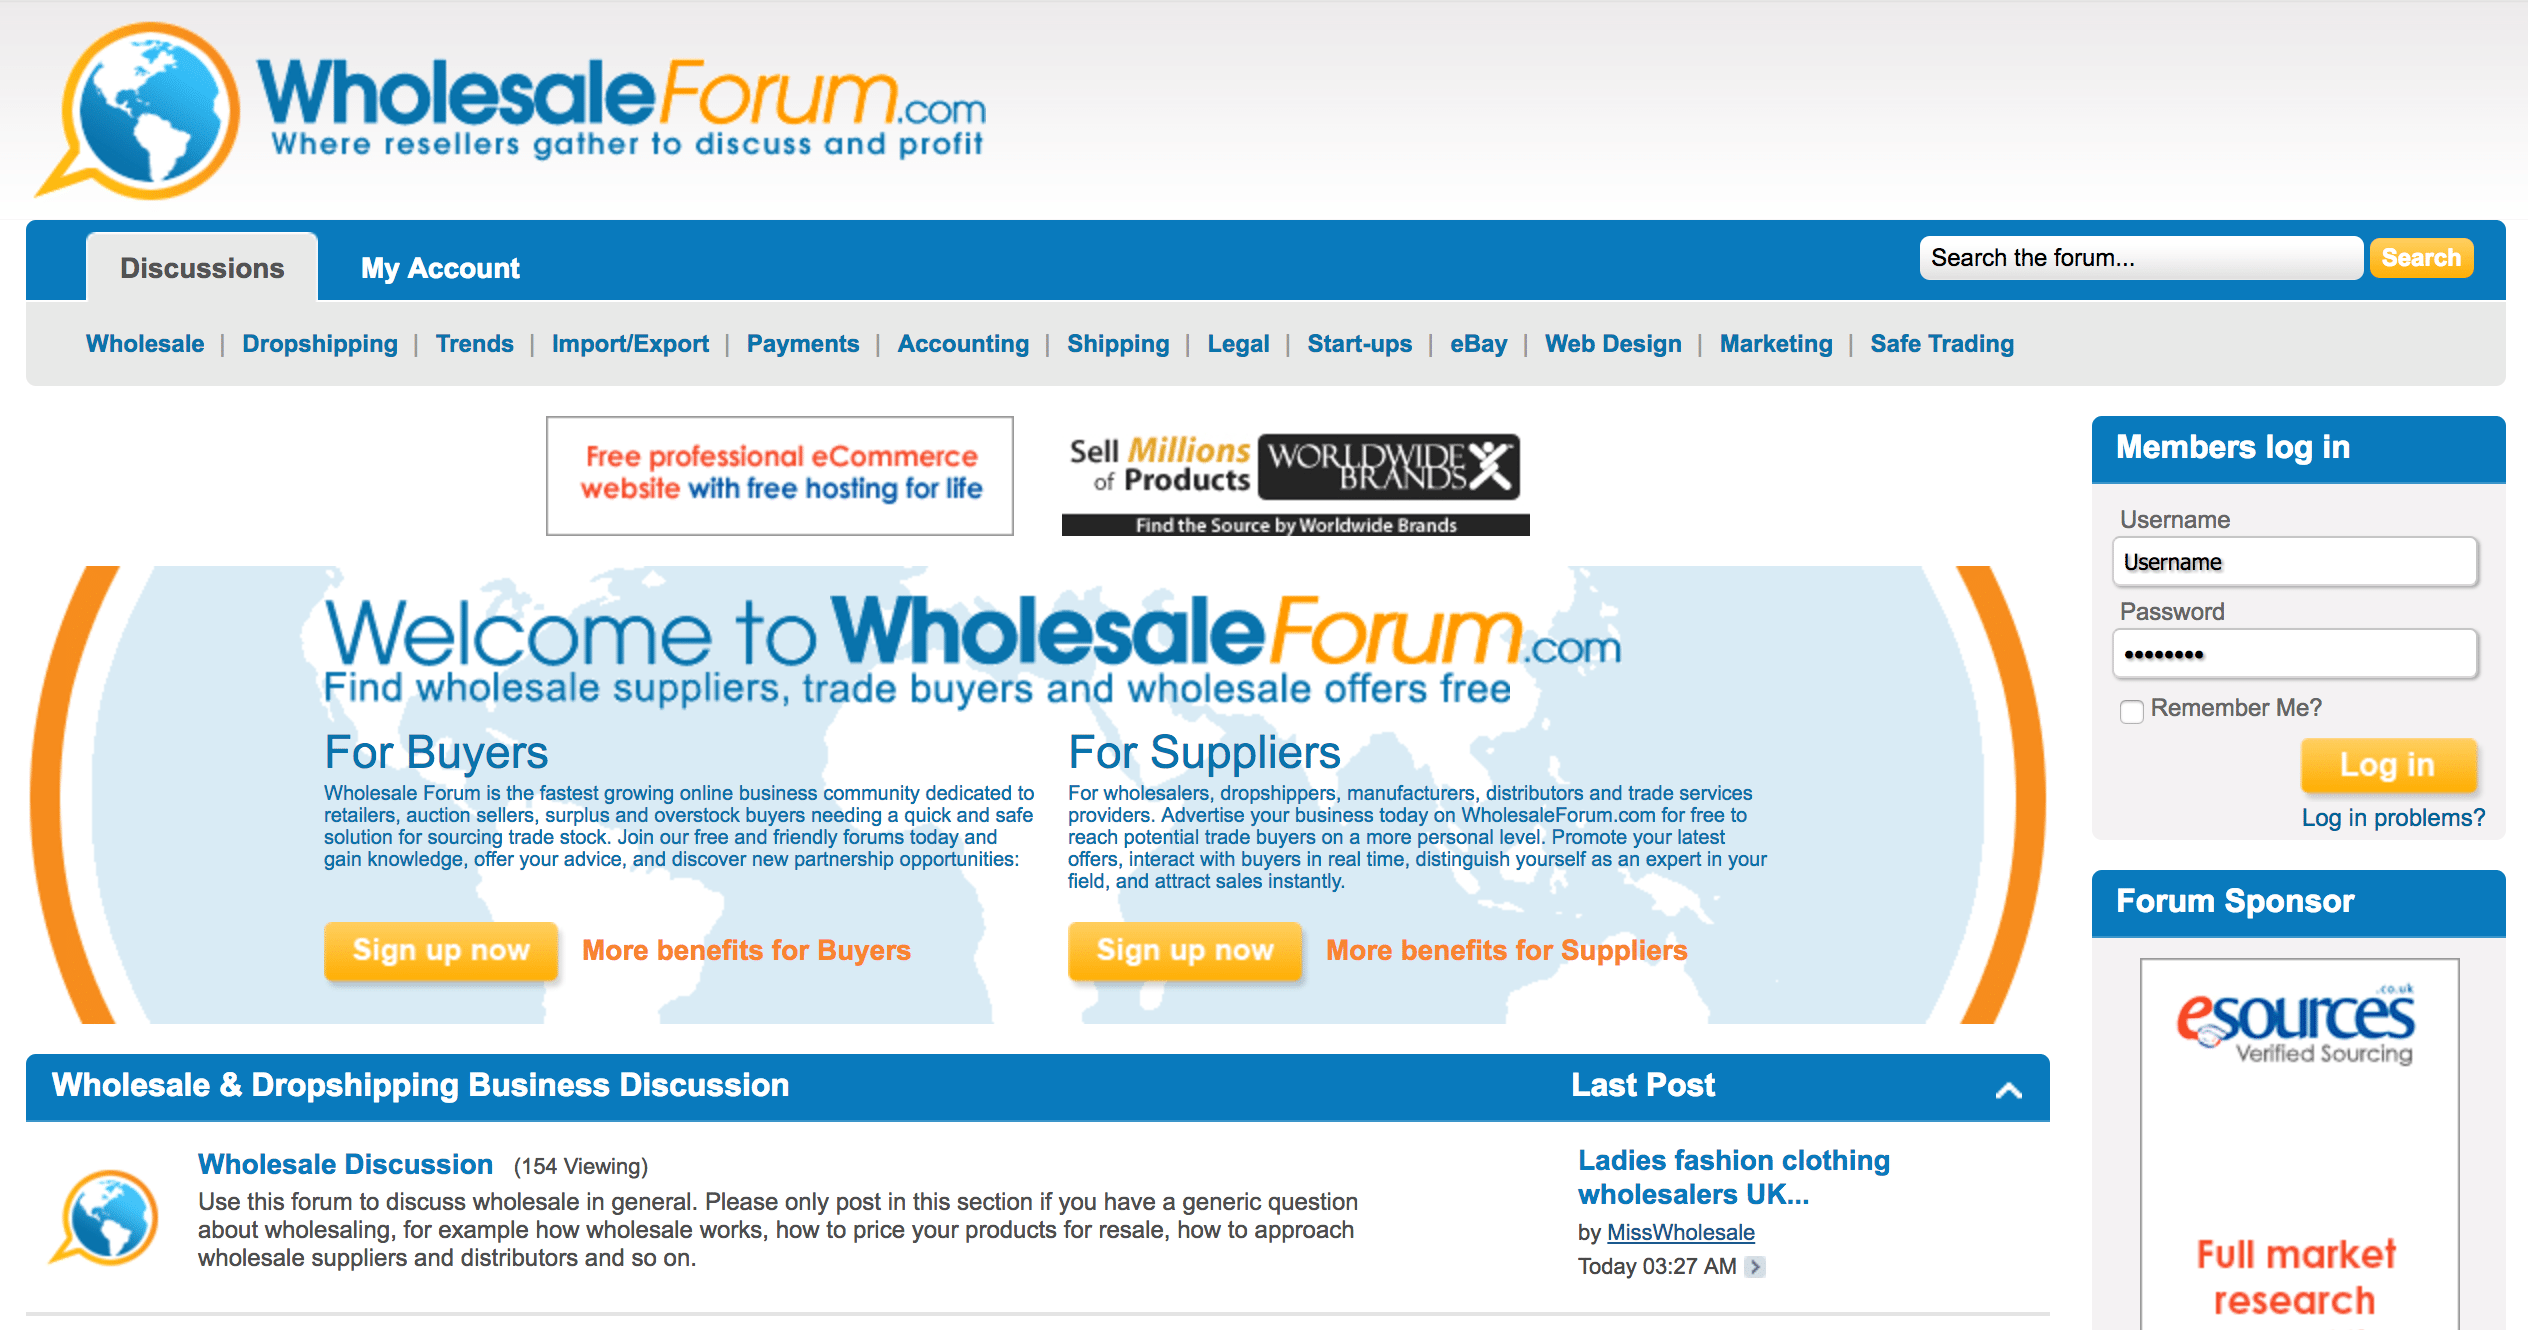 5 Forums Every Wholesalers Should Know Wholesale Forums